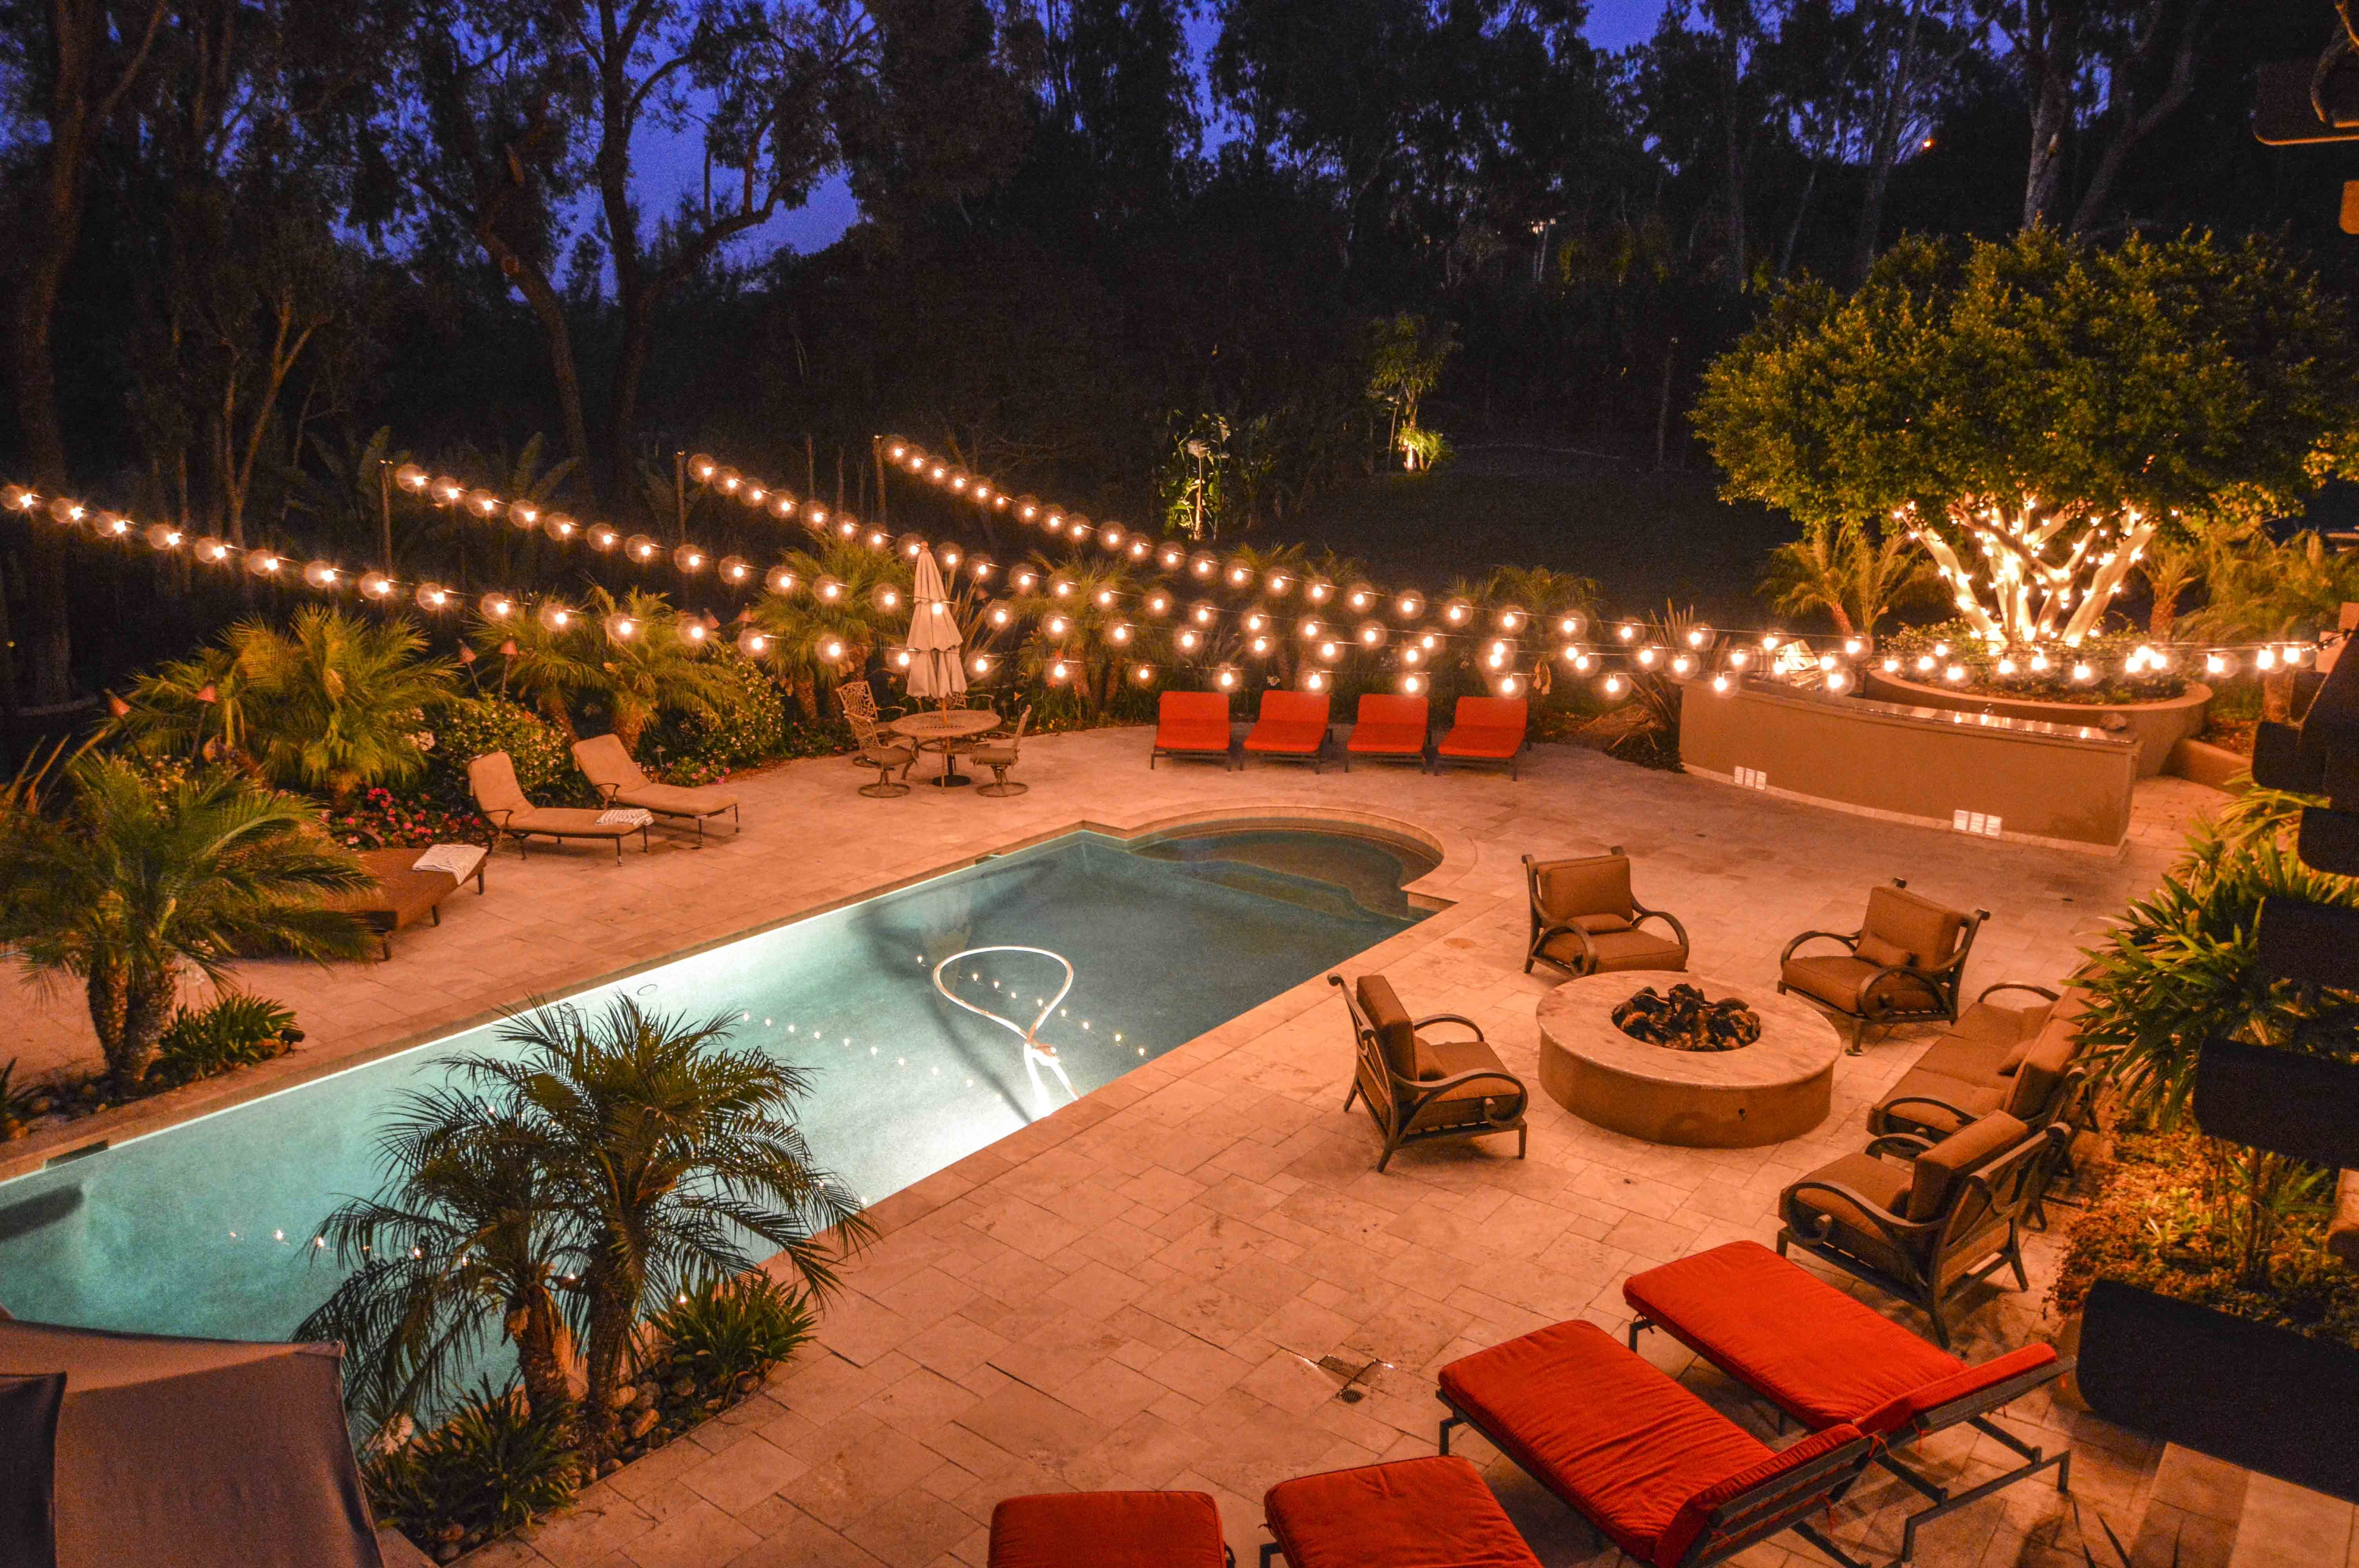 Floating pool lights on pinterest solar pool lights backyard pool - Market Lights At A Backyard Wedding In A Starburst Display Over A Pool